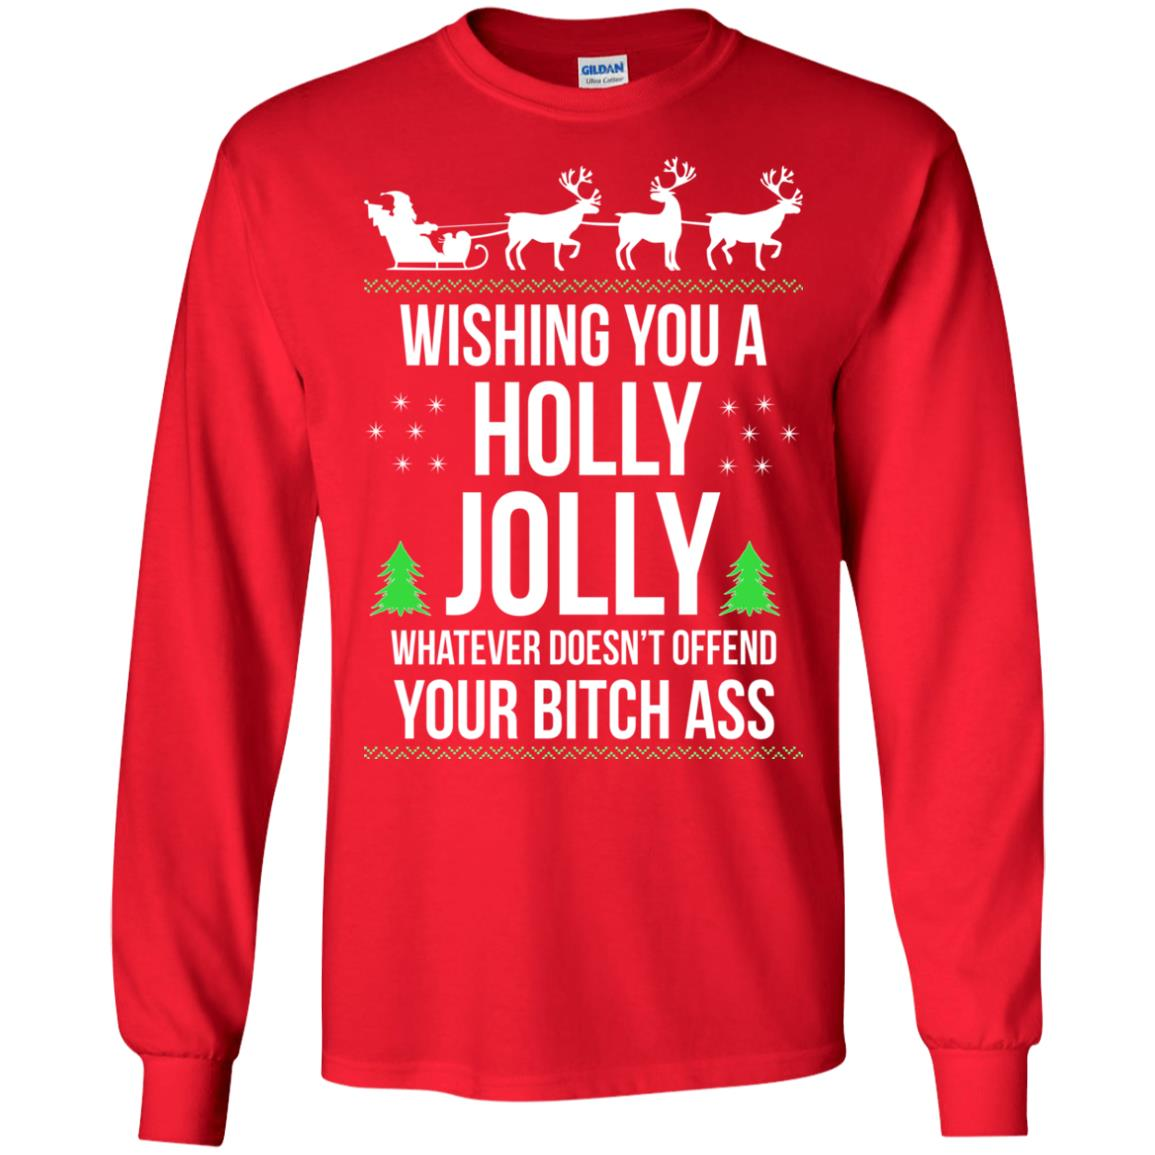 image 1184 - Wishing you a holly jolly whatever doesn't offend your bitch ass sweater, shirt